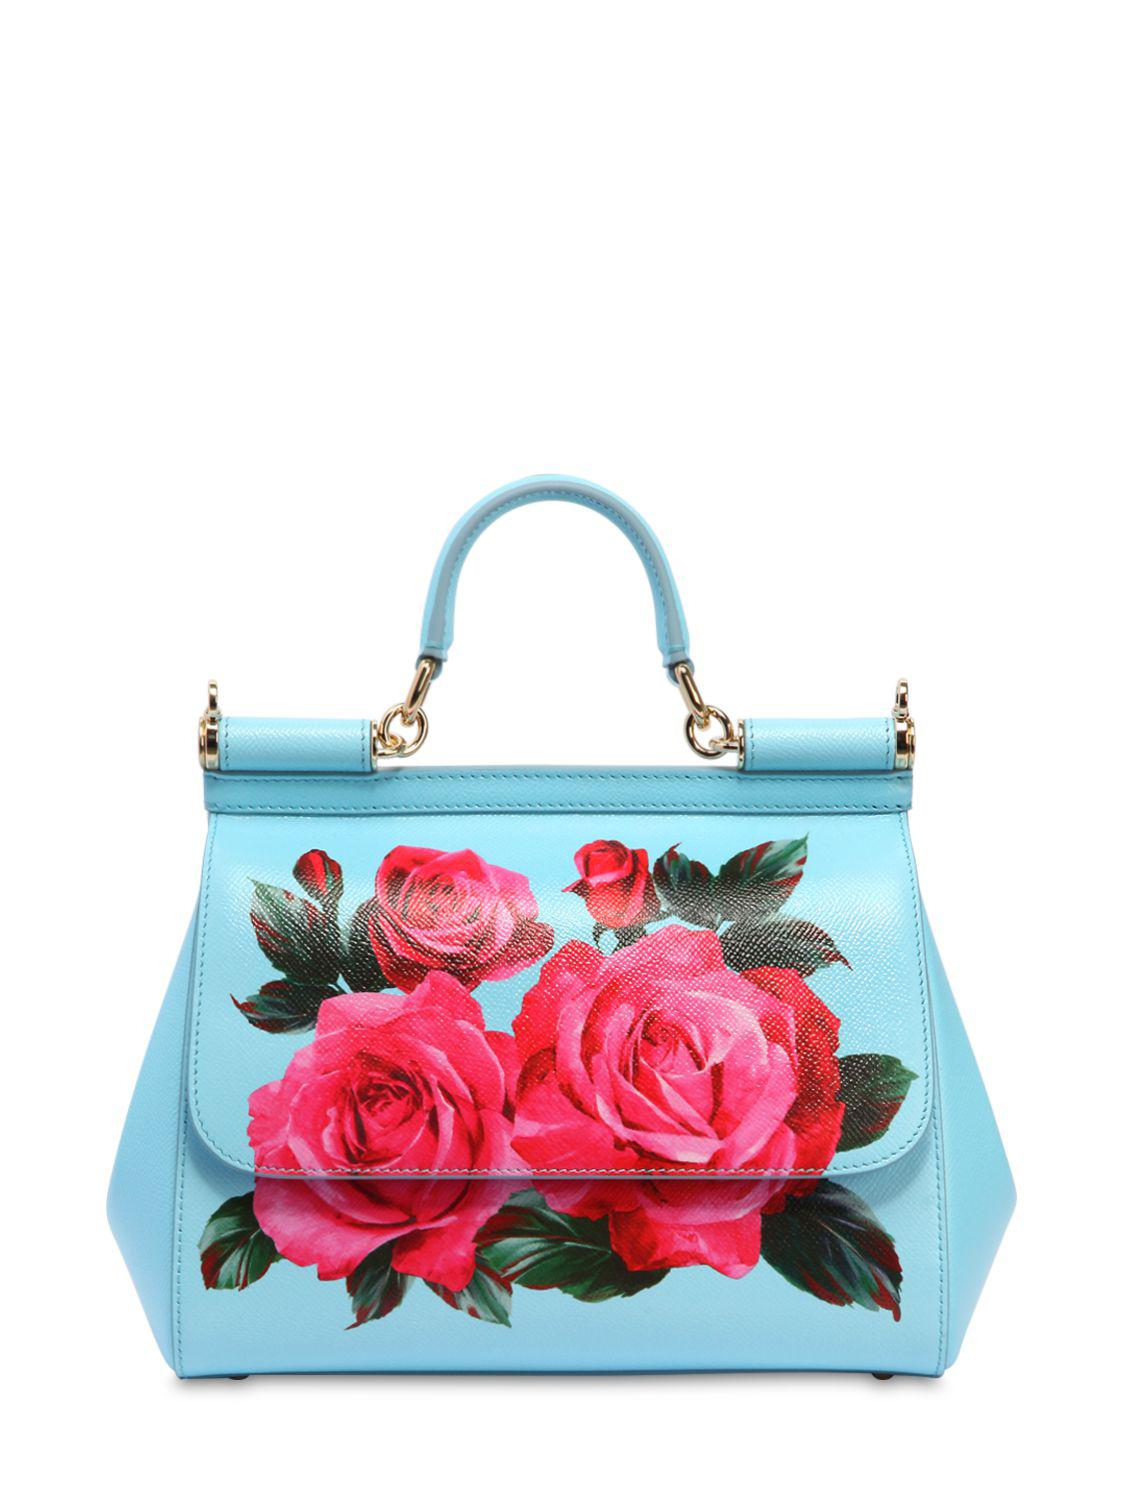 5b43e791ea1 Gallery. Previously sold at: LUISA VIA ROMA · Women's Leather Bags Women's Dolce  Gabbana Sicily